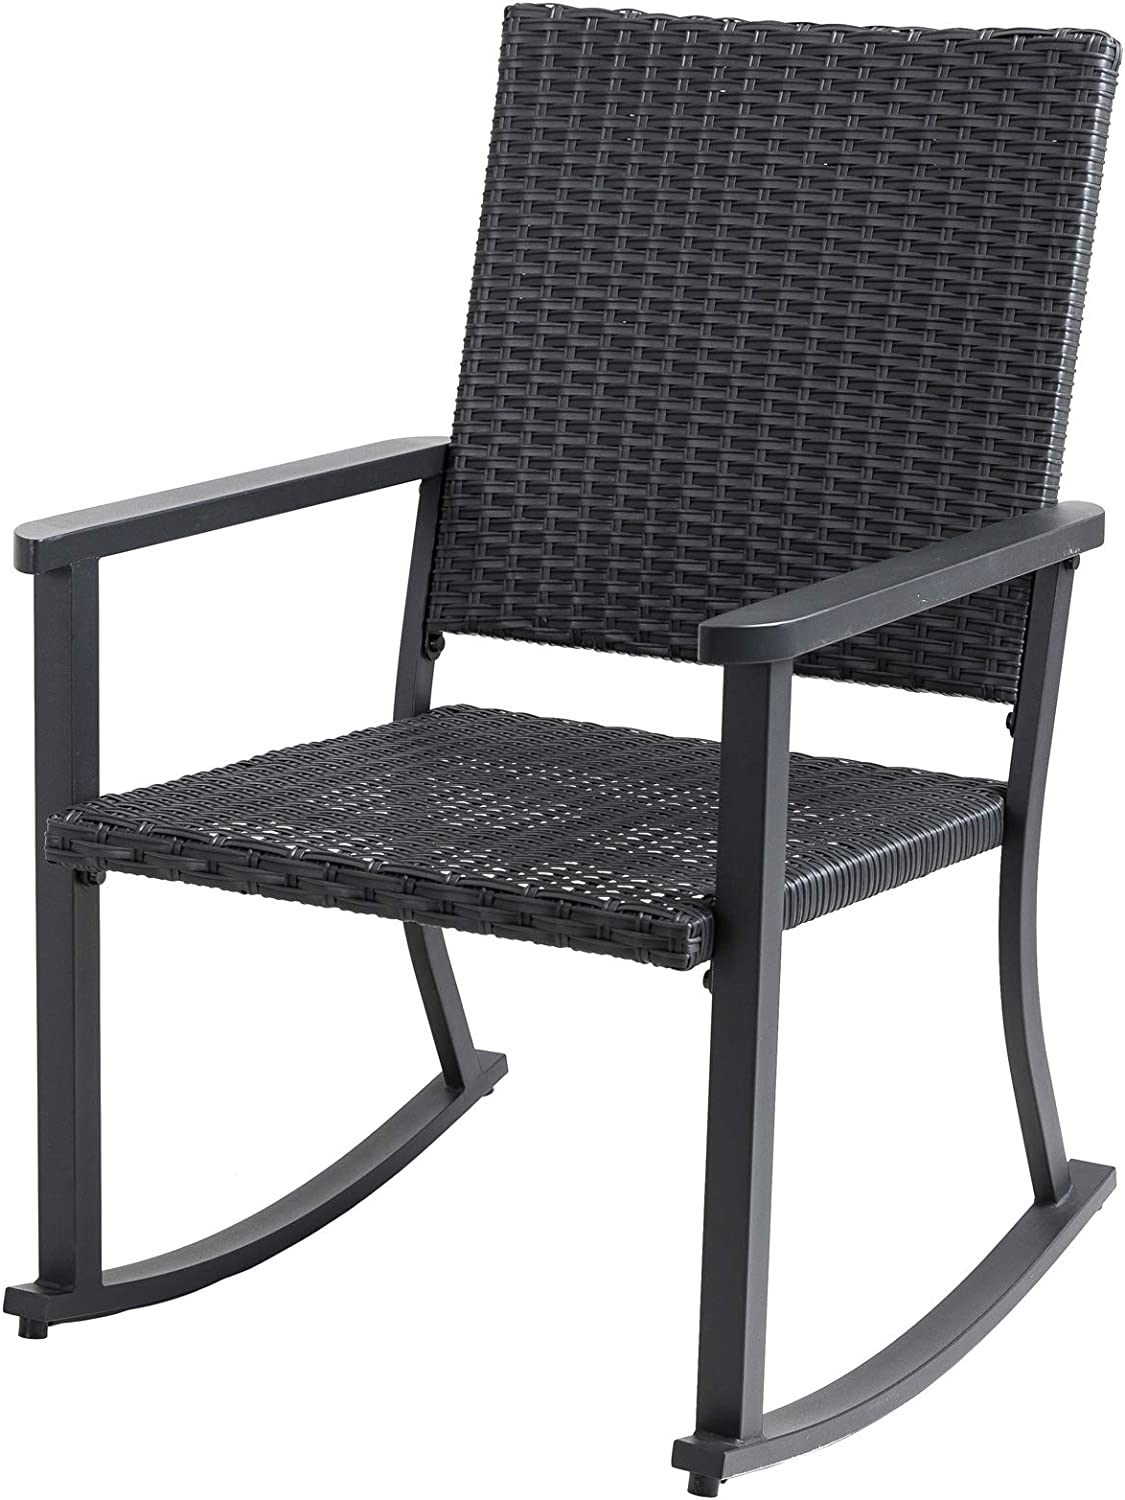 C-Hopetree Patio Rocking Chair, All Weather Outdoor Rocker with Hand Woven Black Wicker and Frame